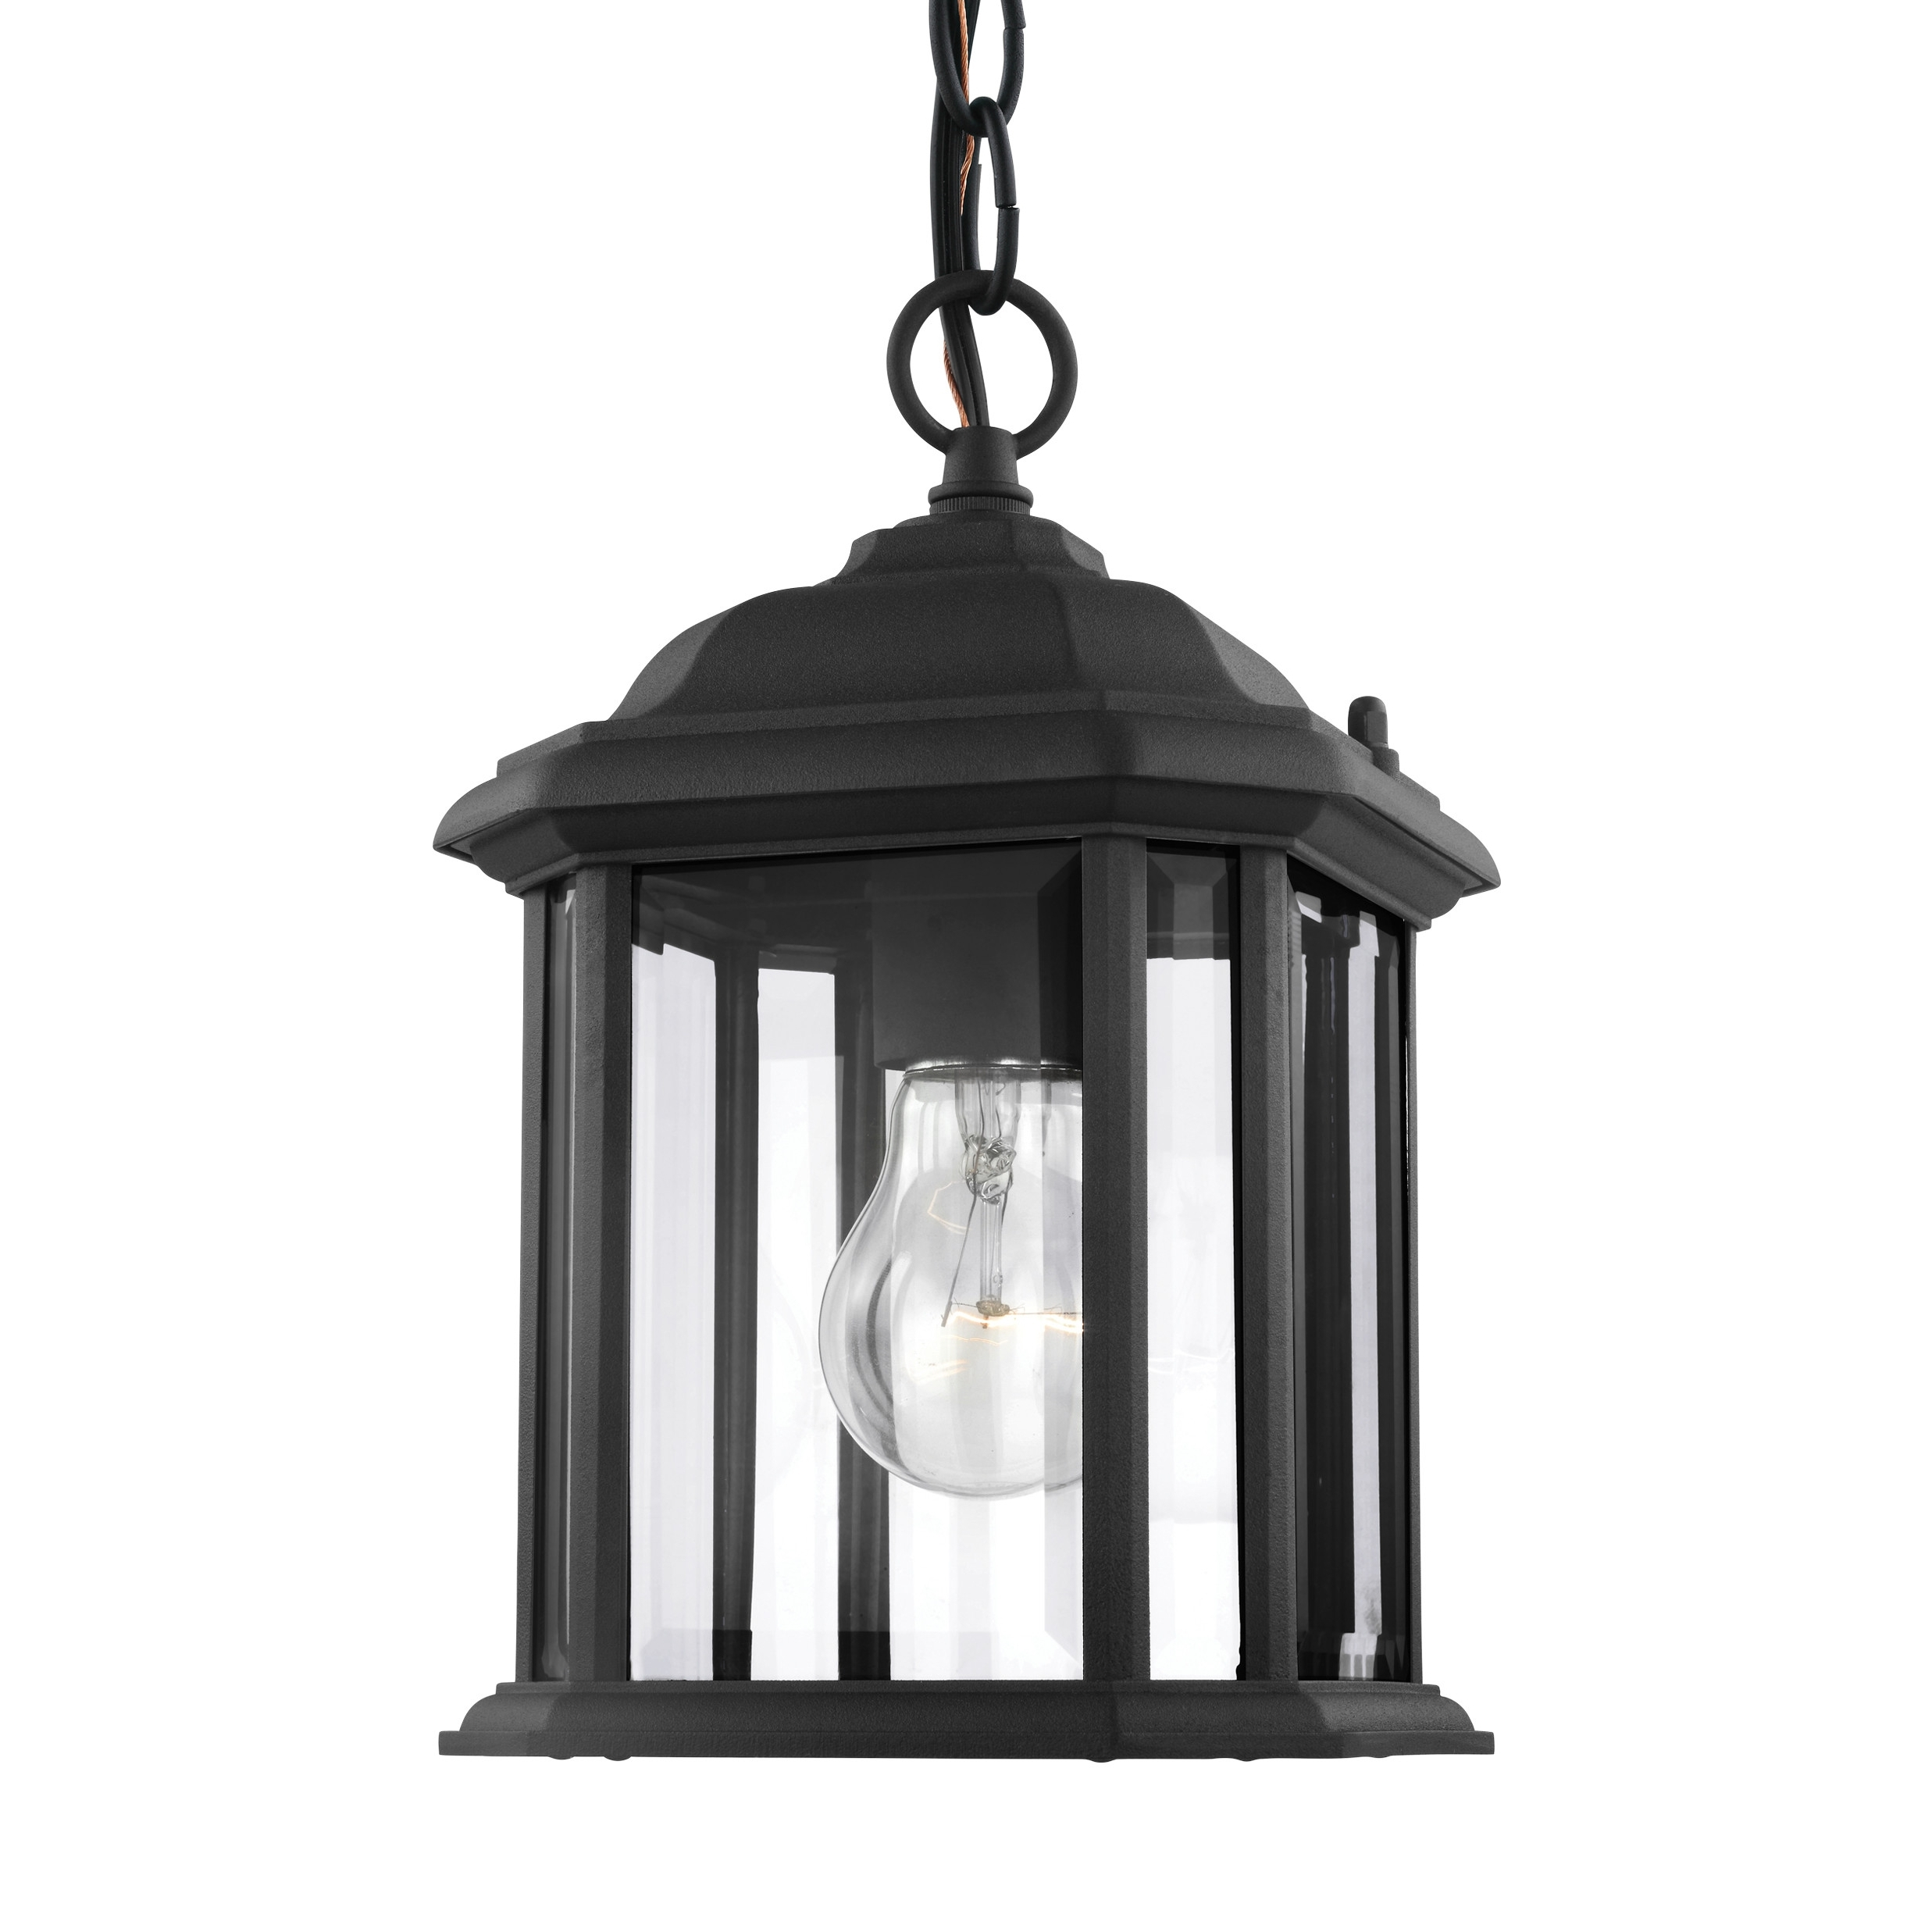 Most Recent Outdoor Hanging Lights Wayfair Supply Kent 1 Light Lantern ~ Loversiq In Wayfair Outdoor Hanging Lights (View 11 of 20)